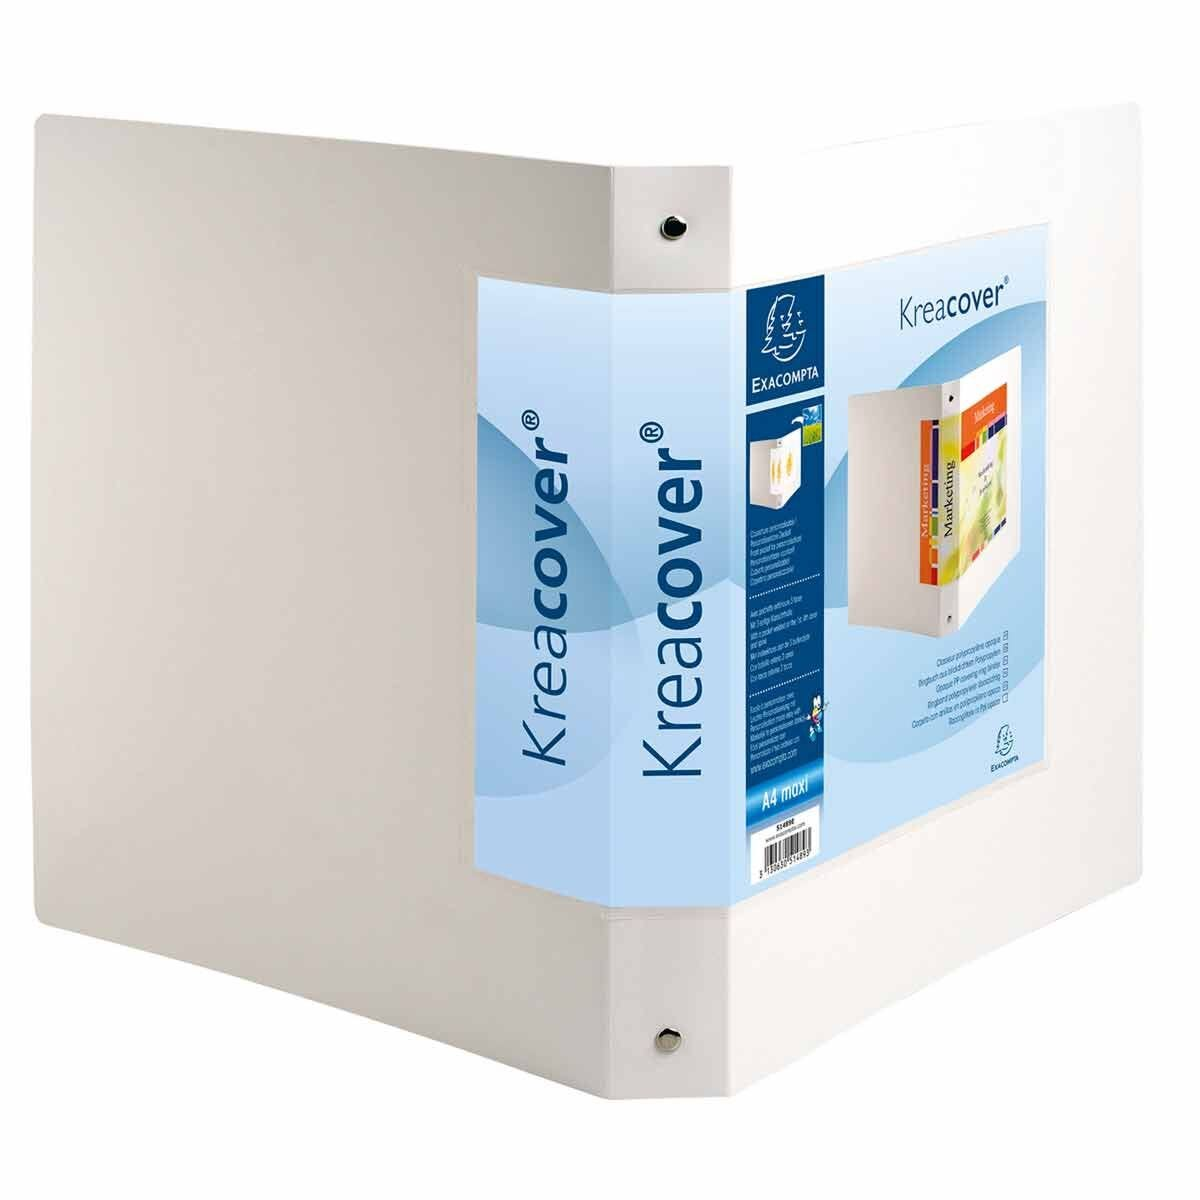 Exacompta Kreacover Opaque Ring Binder A4 Plus 4 Rings 30mm Pack of 5 White